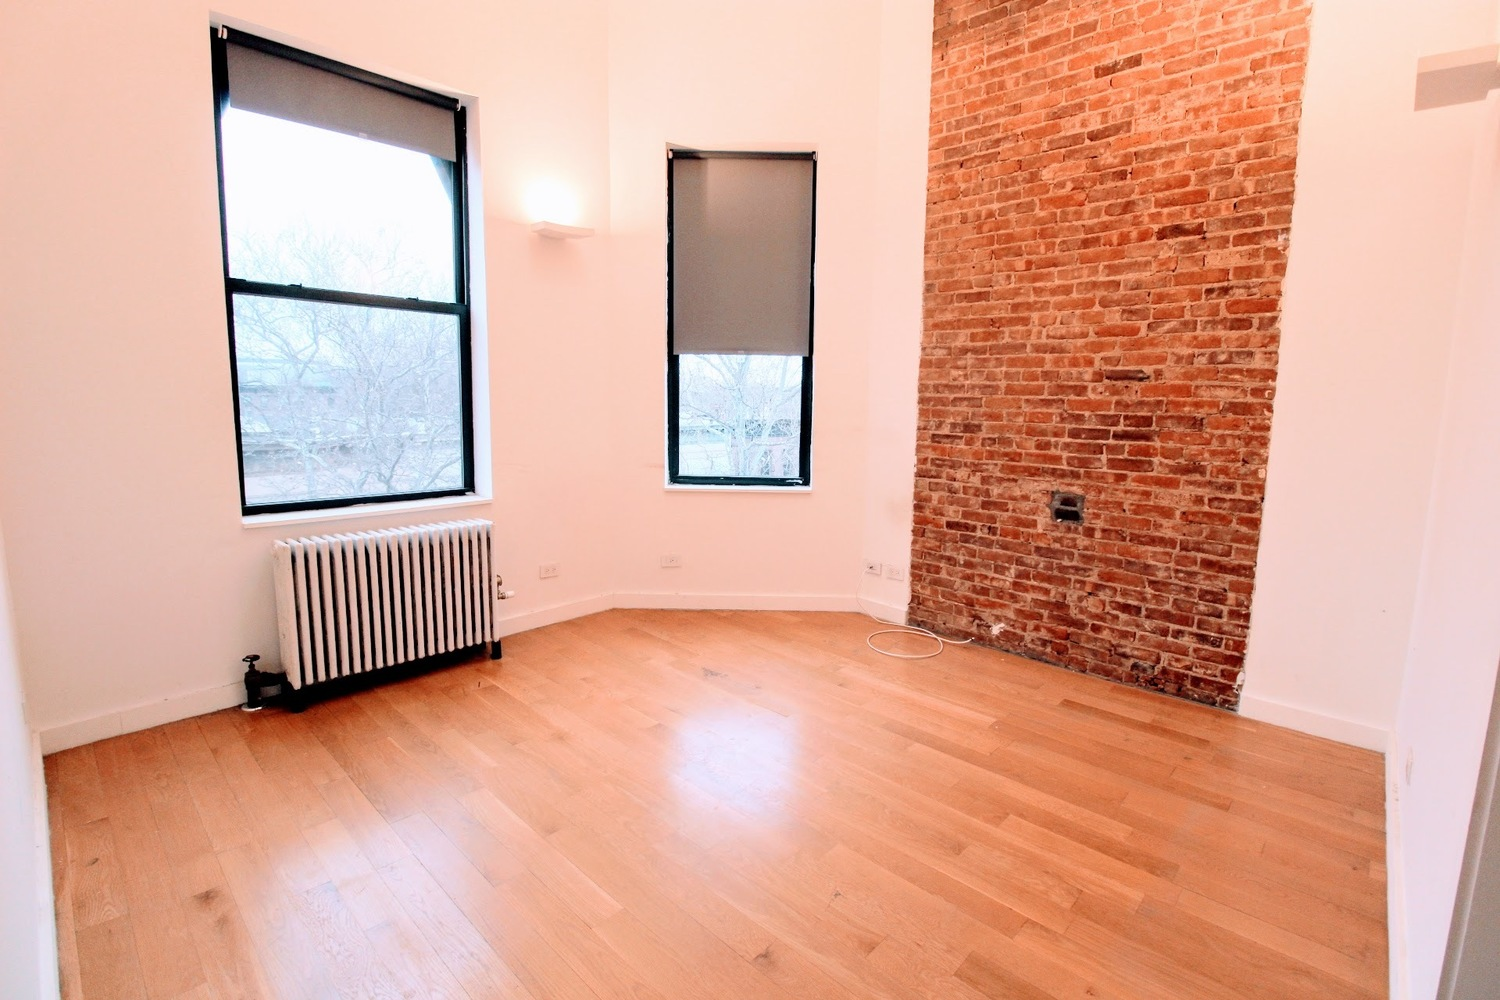 142-144 Decatur Street, Unit D6 Brooklyn, NY 11233